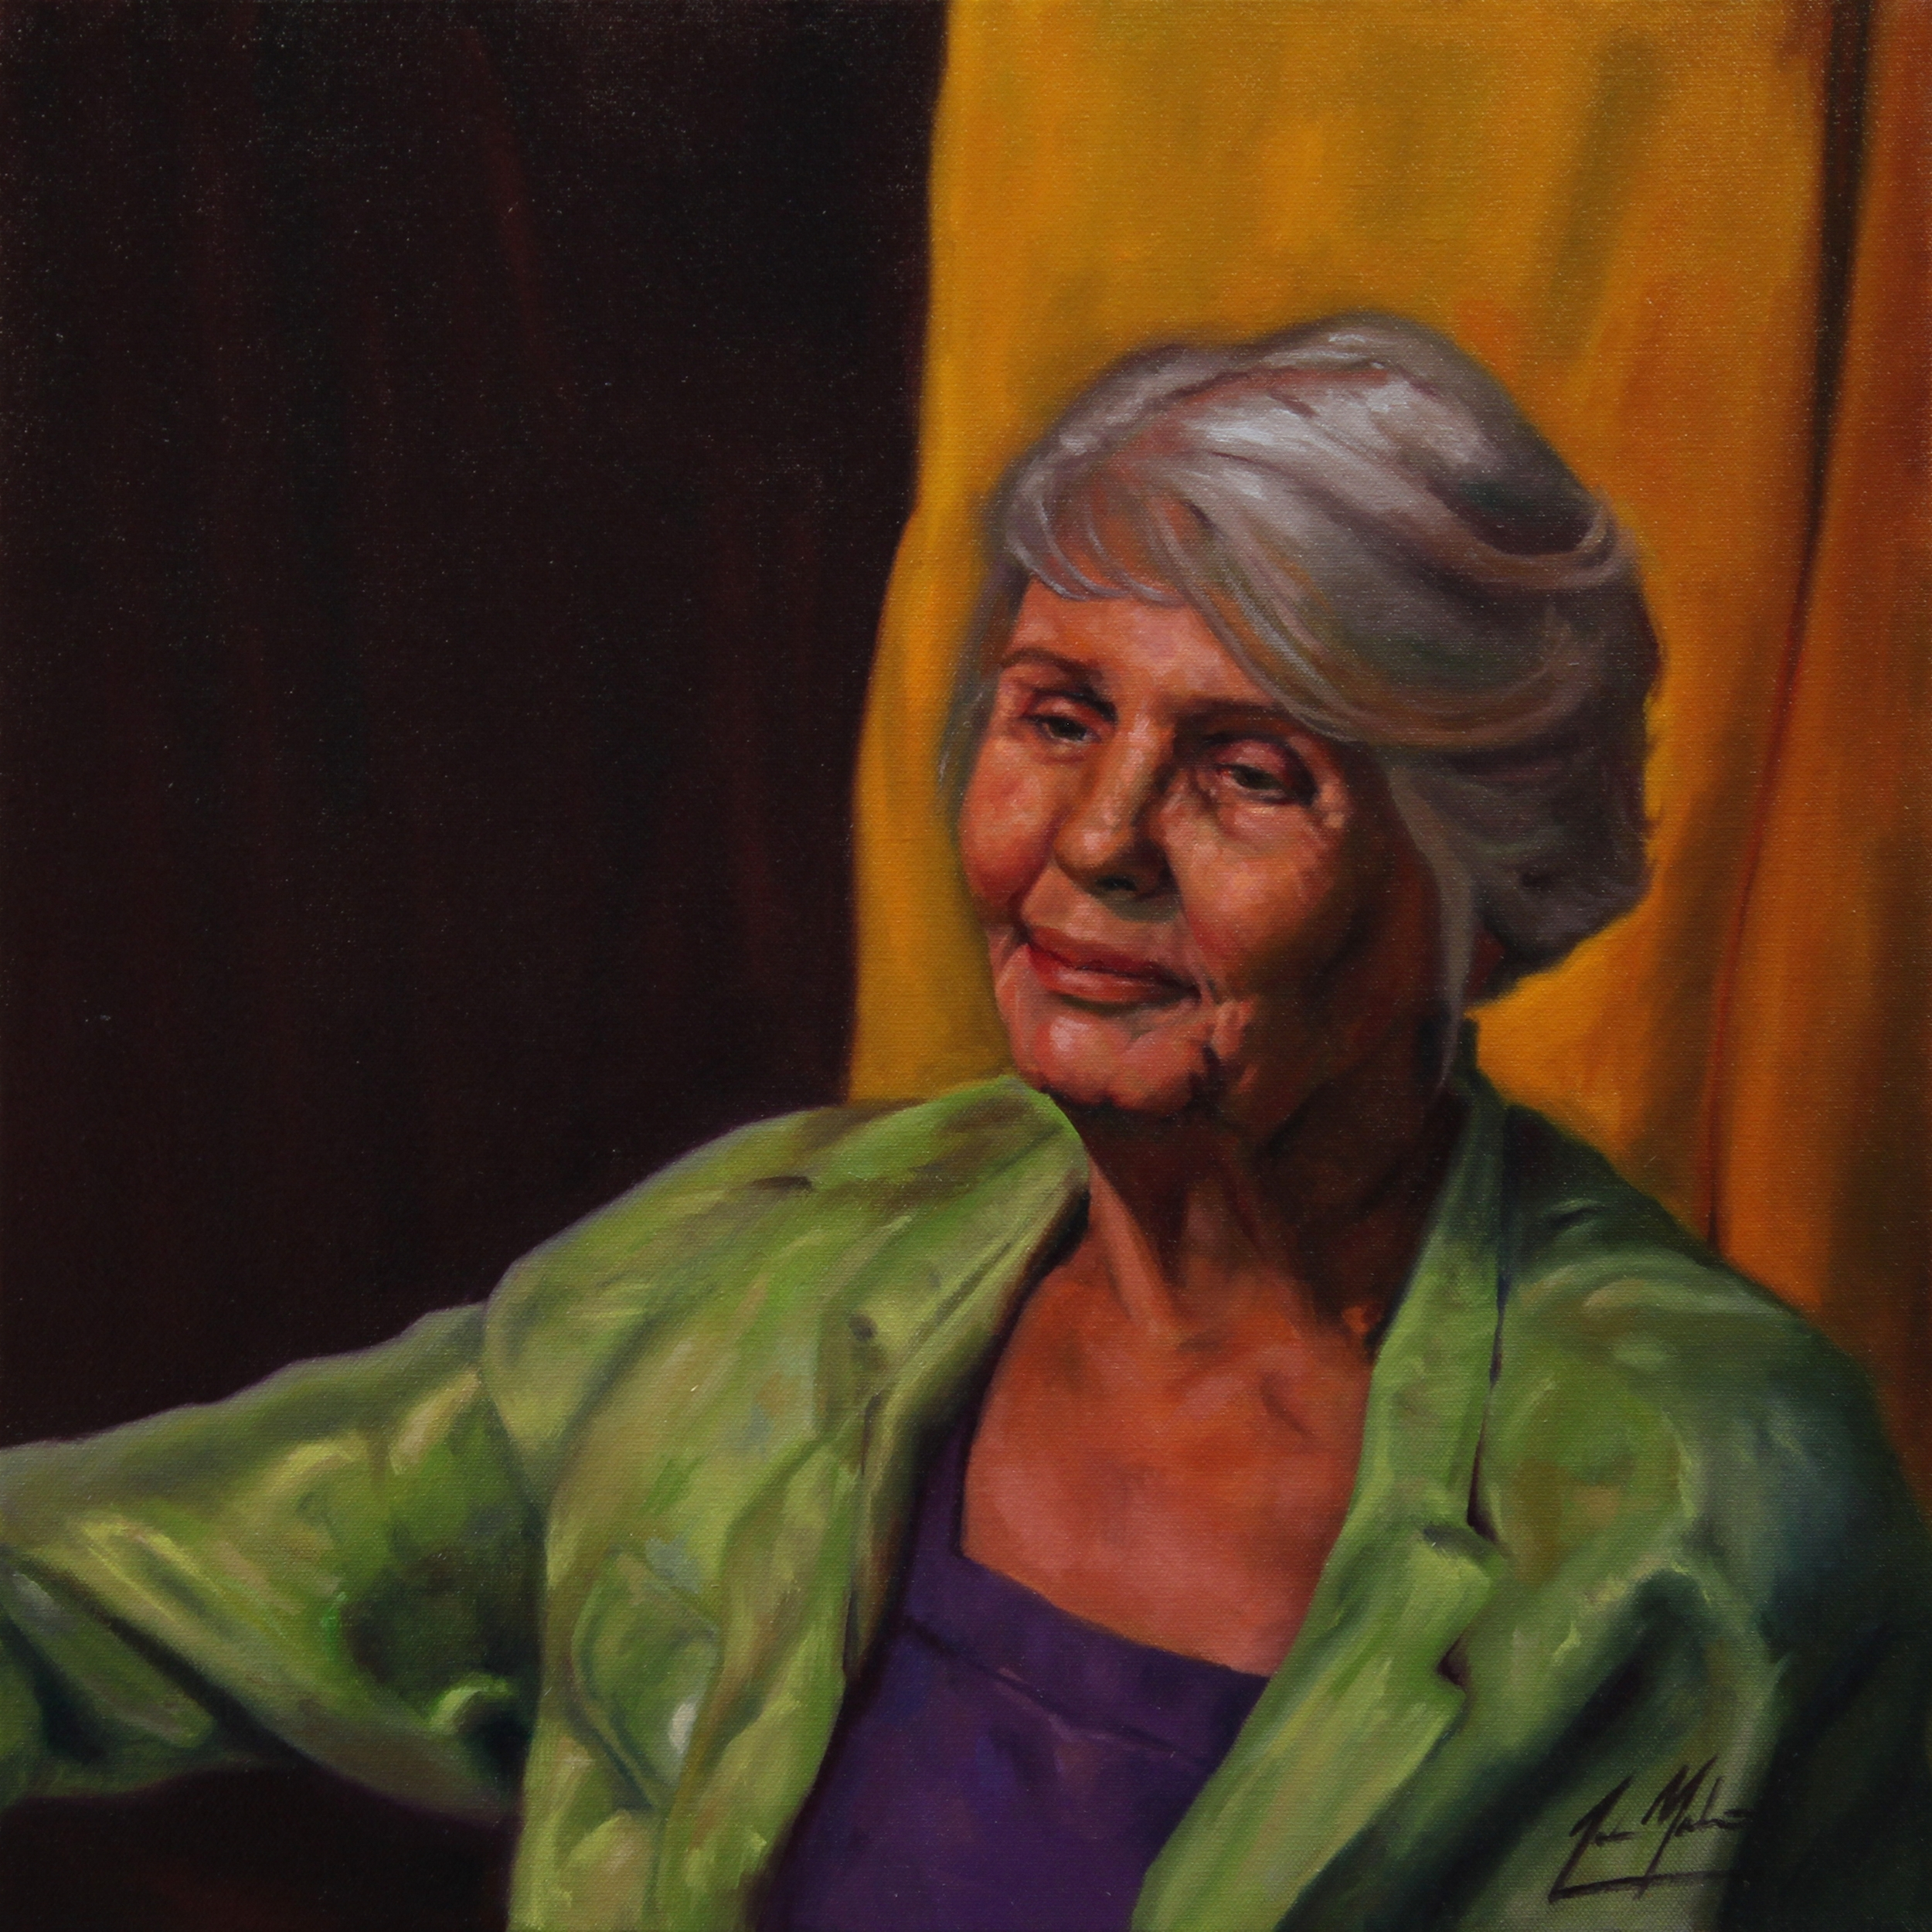 Beth, 2014, oil on canvas, 20 x 20 inches